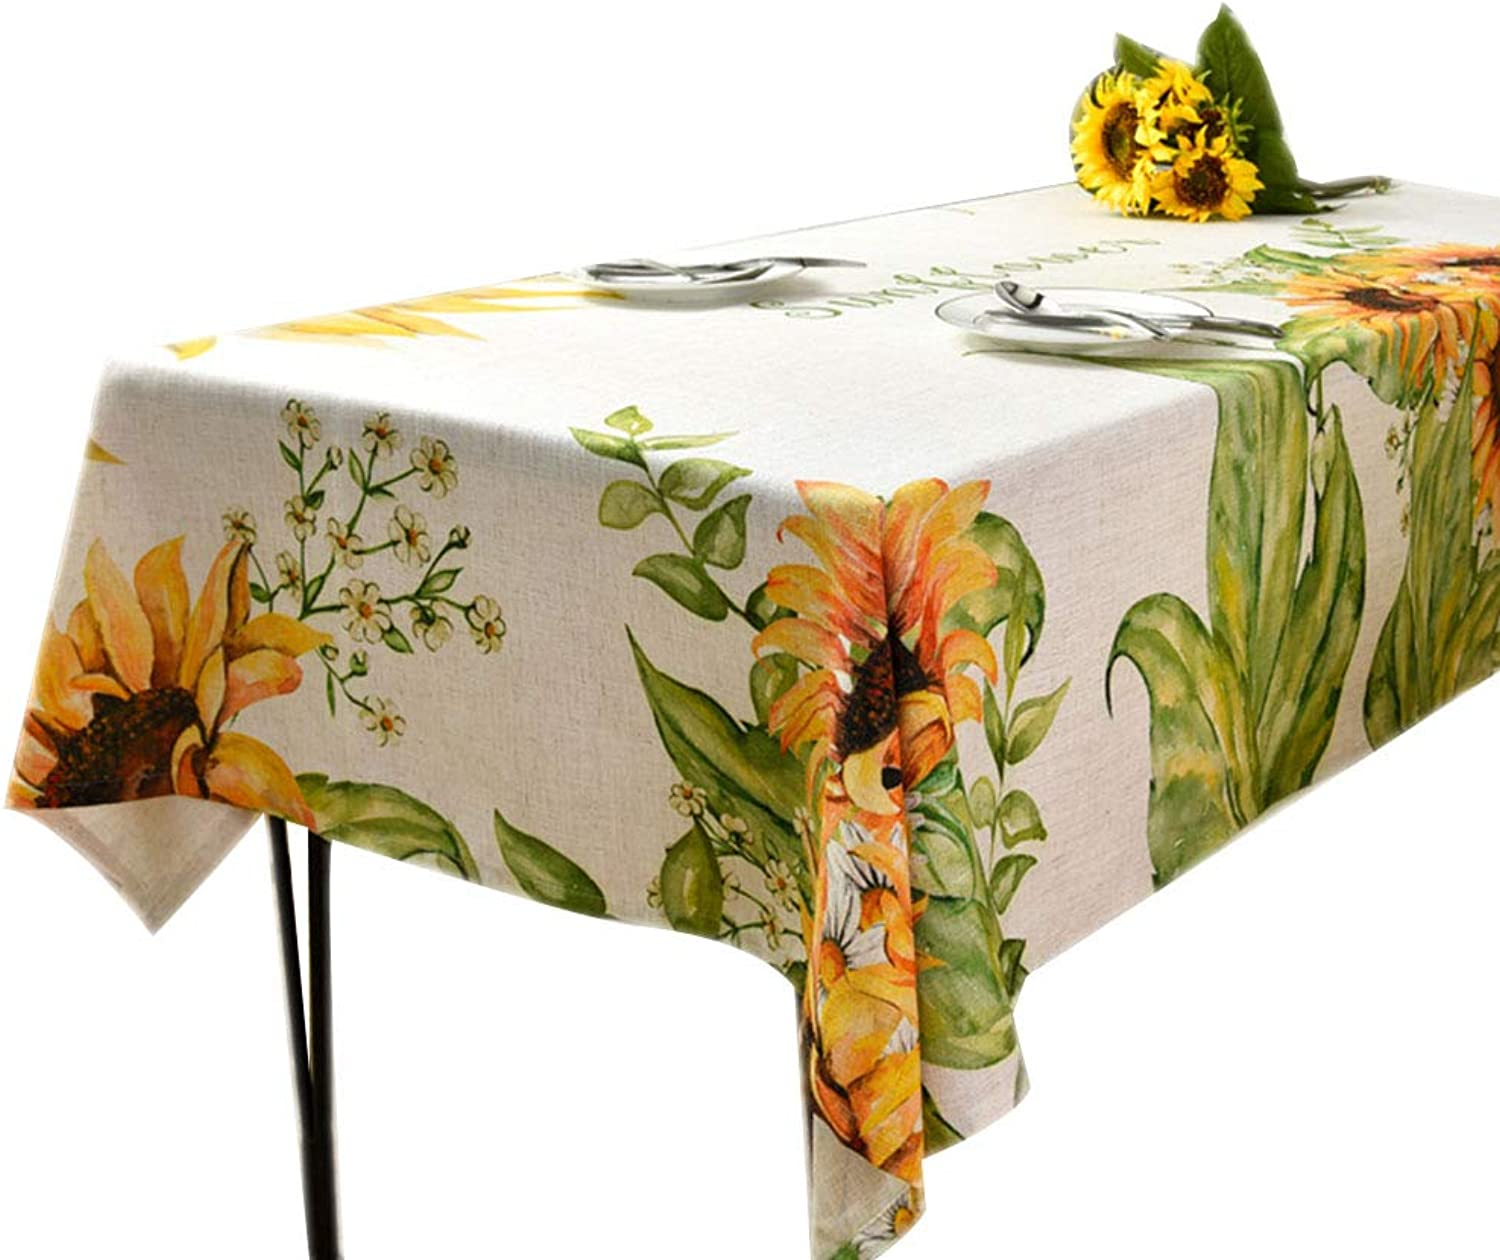 Z-one Tournesol Imprimé Nappe de Table Rectangle, Coton Lin Anti poussière Lavable à Manger Nappe Prougeection pour Coffee Table Cuisine -A 130x220cm(51x87inch)